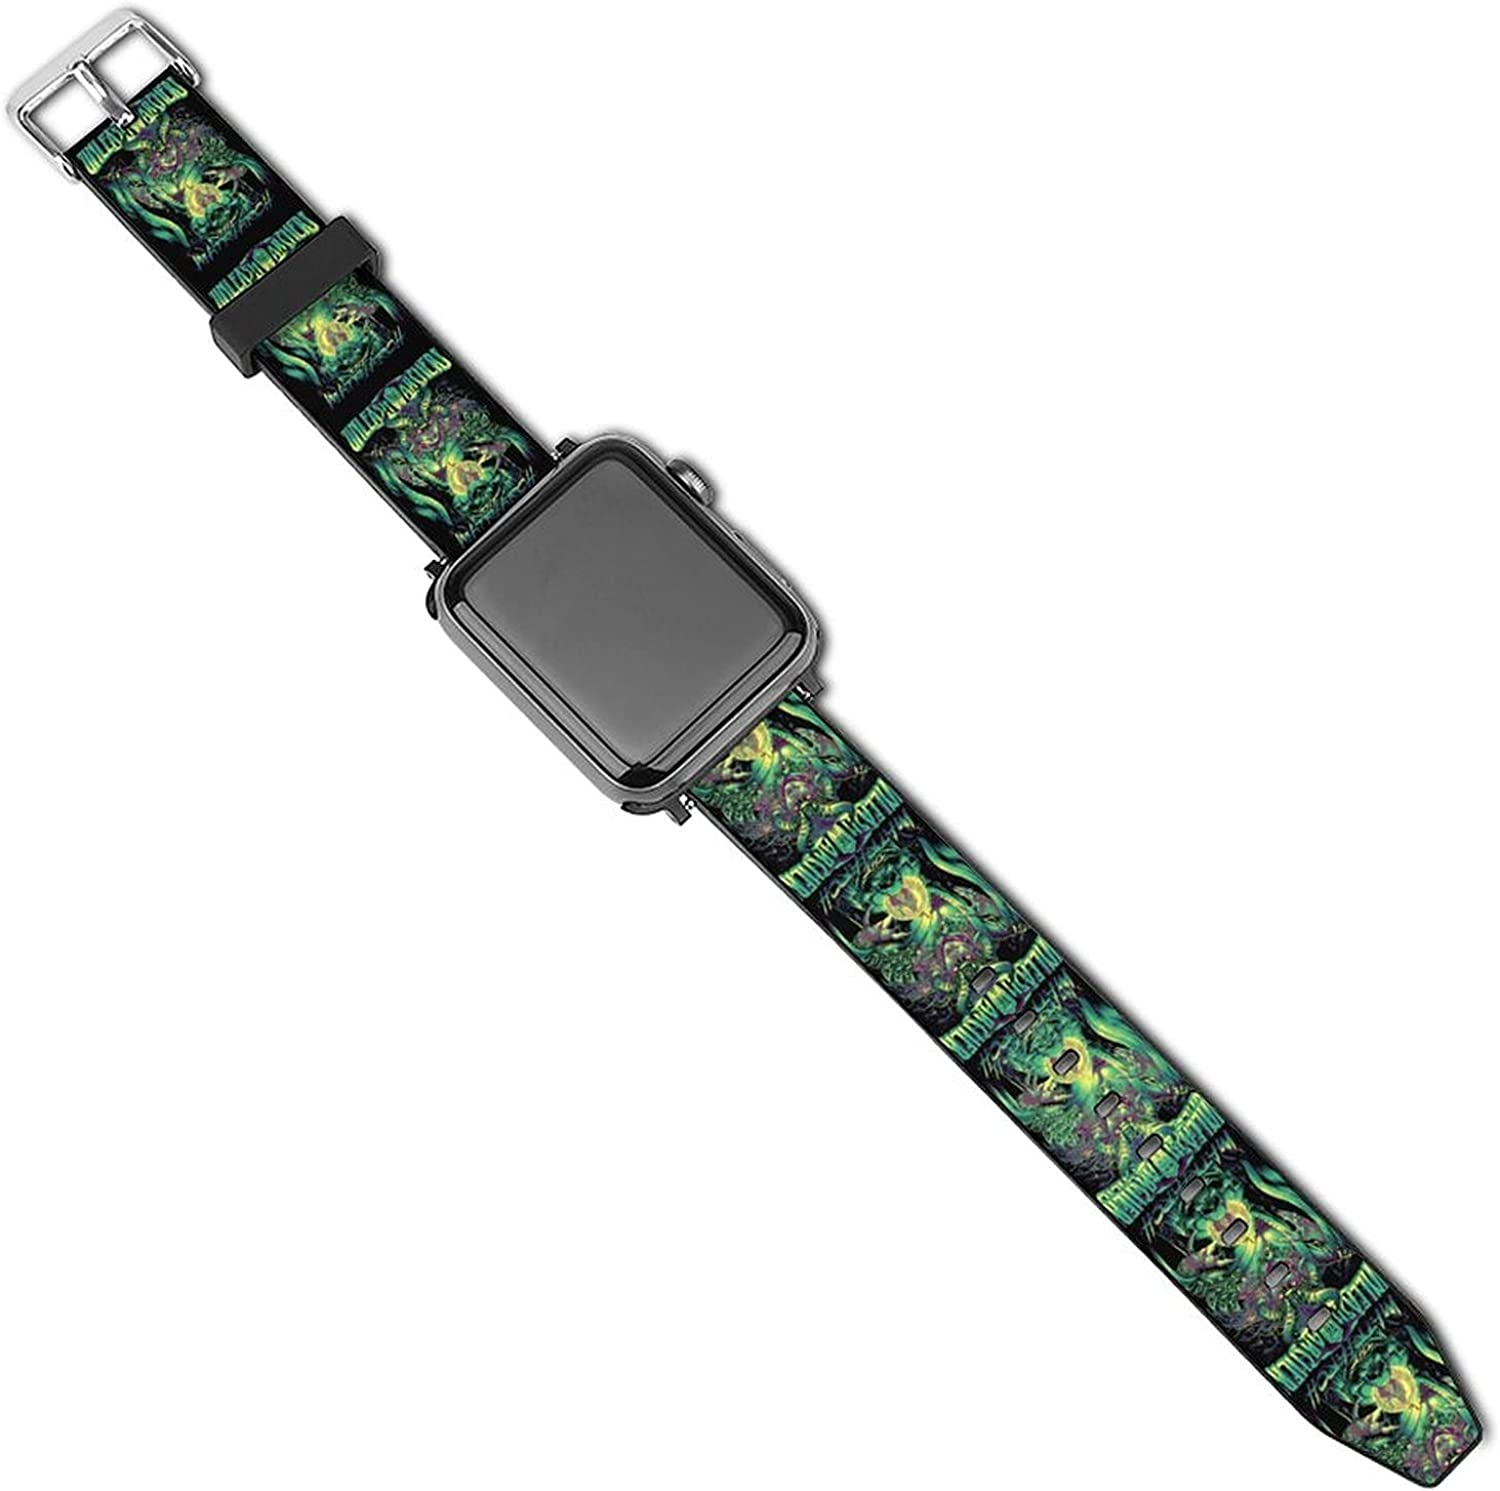 Un-leash The-Archers Fashion Patterned Leather Wristband Strap for Apple Watch Series 5/4/3/2/1